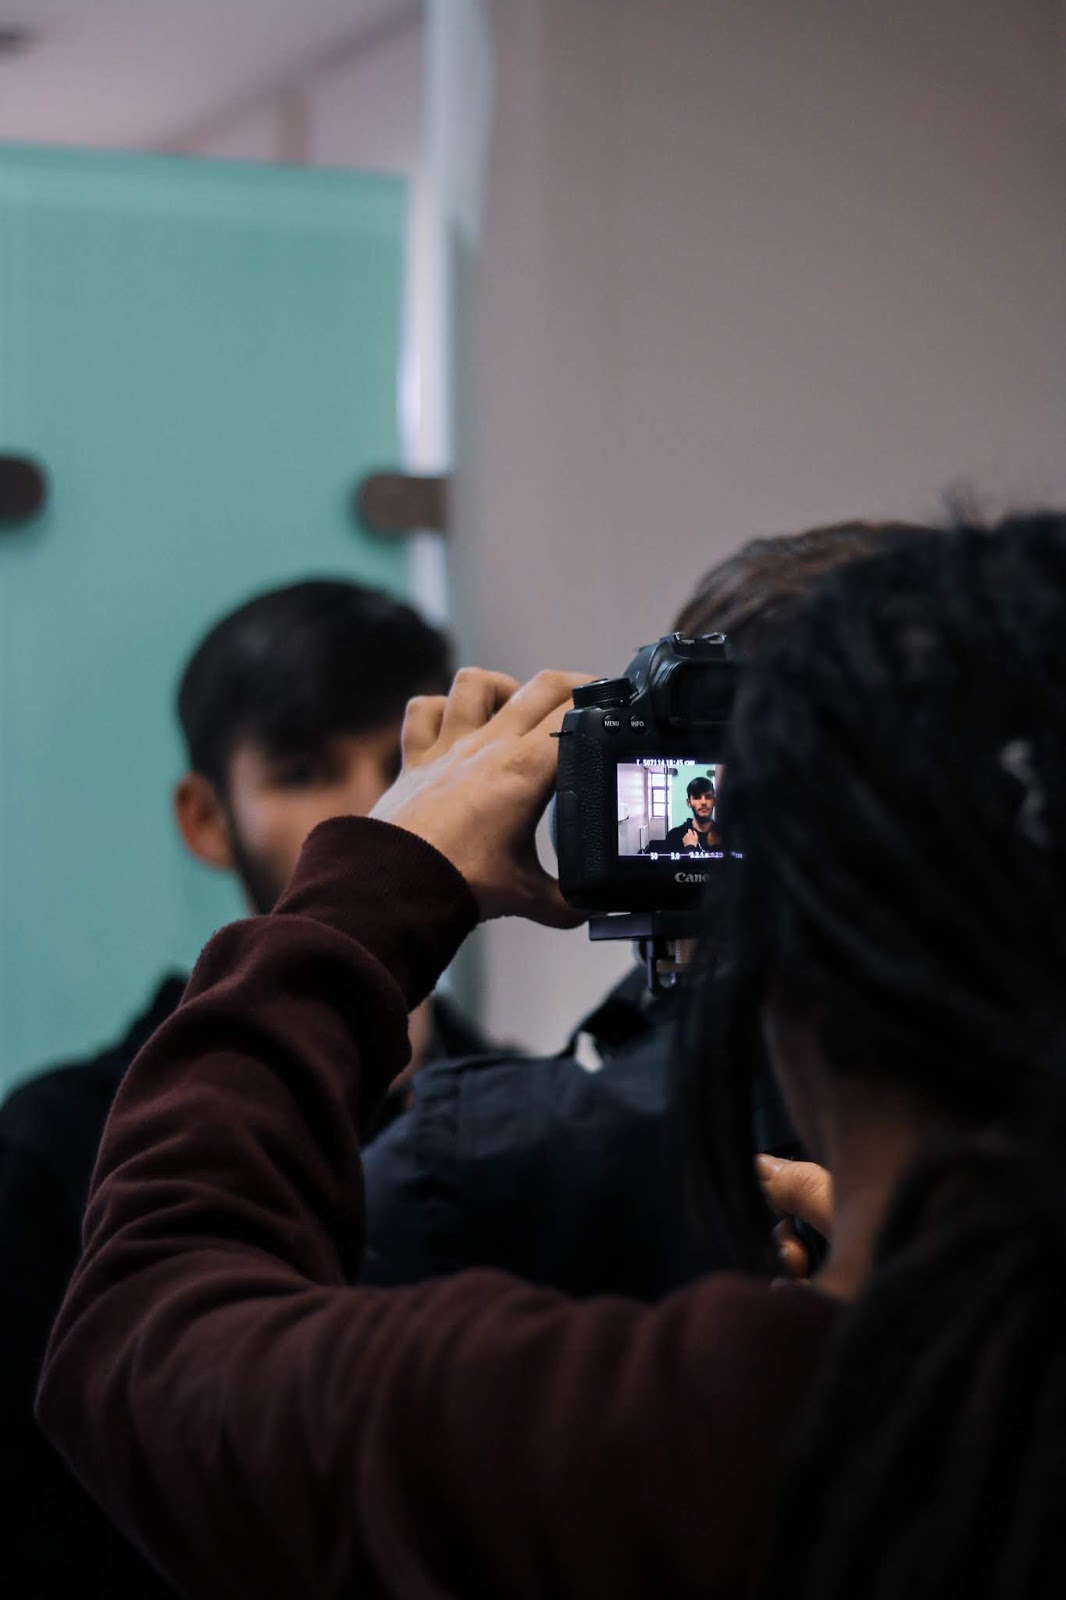 a over the shoulder photo of a girl with dreadlocks using a camera to film a boy who is in the background and blurred. The girl is wearing a Burgundy zipper and using a canon 6D camera, photo by Jordanne Lee